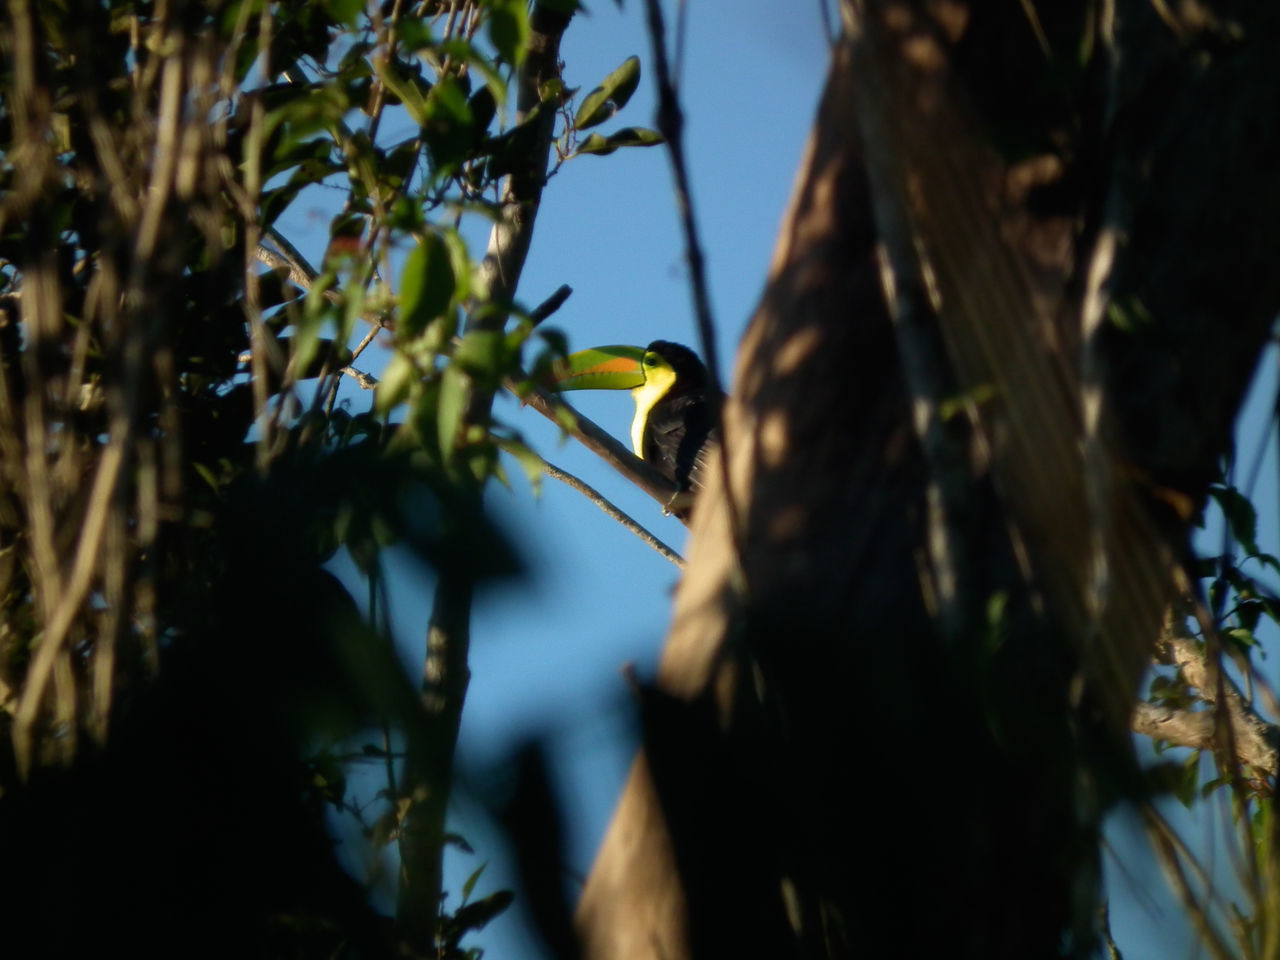 Toucan, Yucatan Peninsula Beauty In Nature Bird Bird Watching Forest Nature Through Trees Toucan Tree Tropical Wild Wildlife Yucatan Mexico Yucatan Peninsula Yúcatan